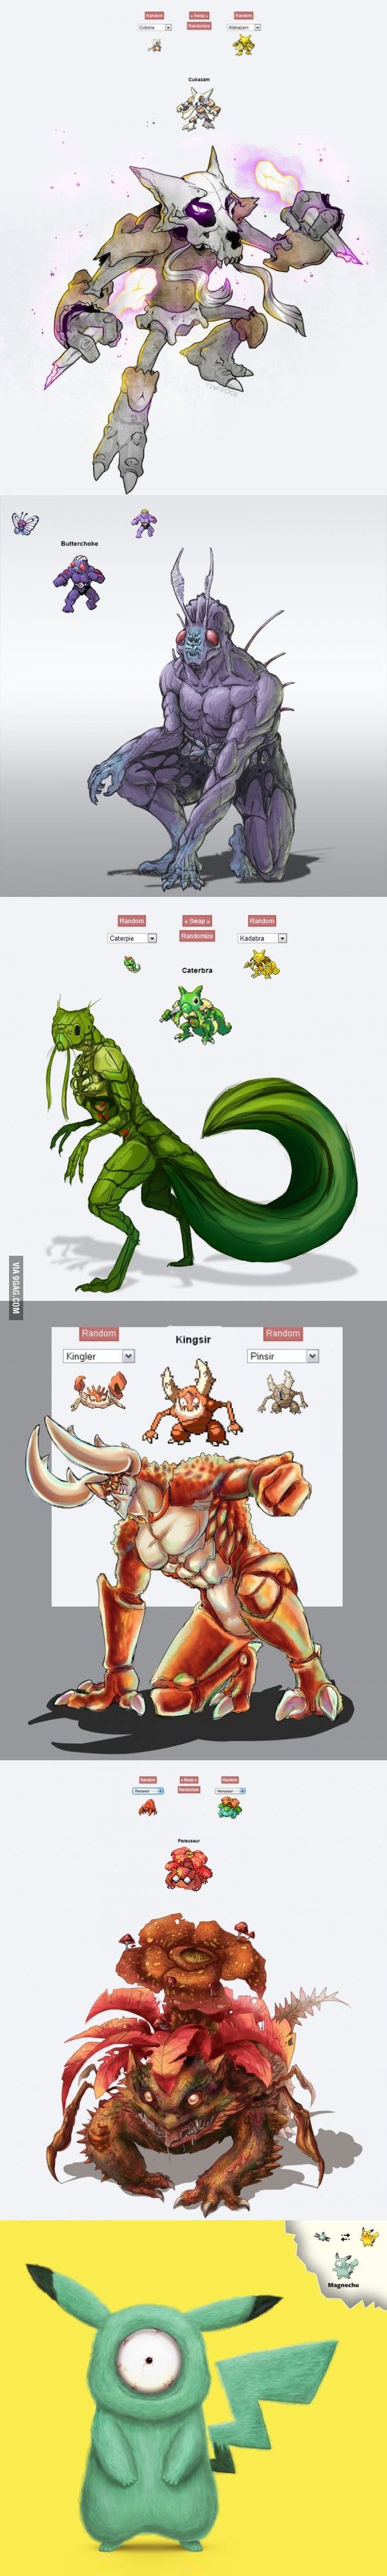 Pokemon fusions coming to life